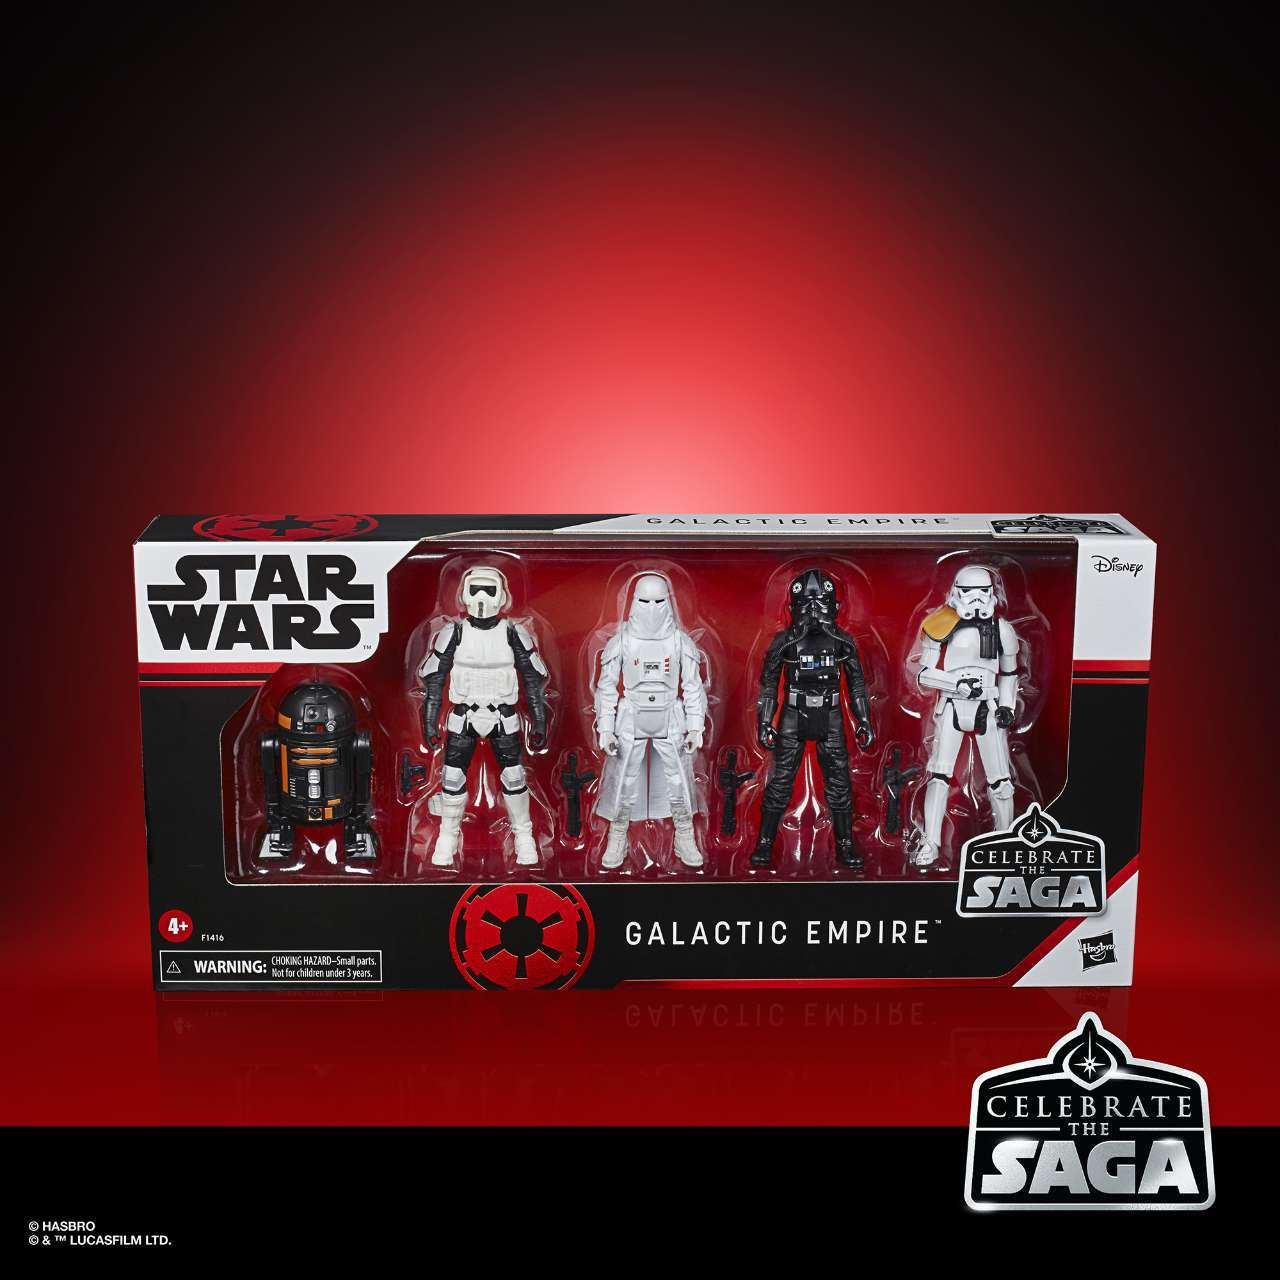 STAR WARS CELEBRATE THE SAGA 375-INCH GALACTIC EMPIRE Figure 5-Pack - in pck